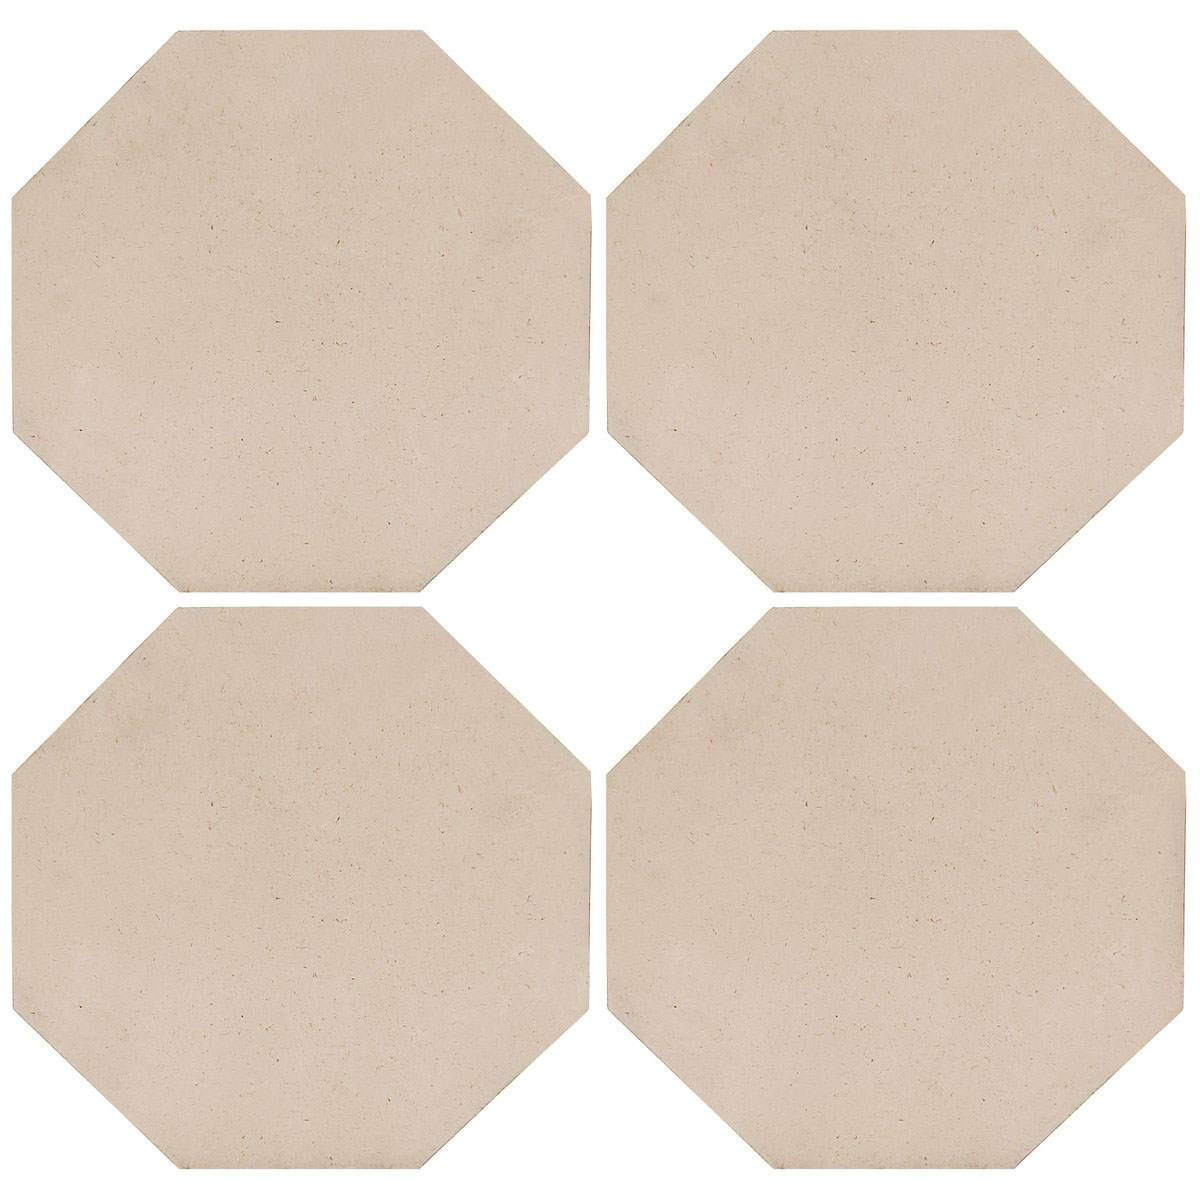 MDF Wooden Plate Octagon Shape (Pack of 4) (10x10 Inch) (4MM Thick)